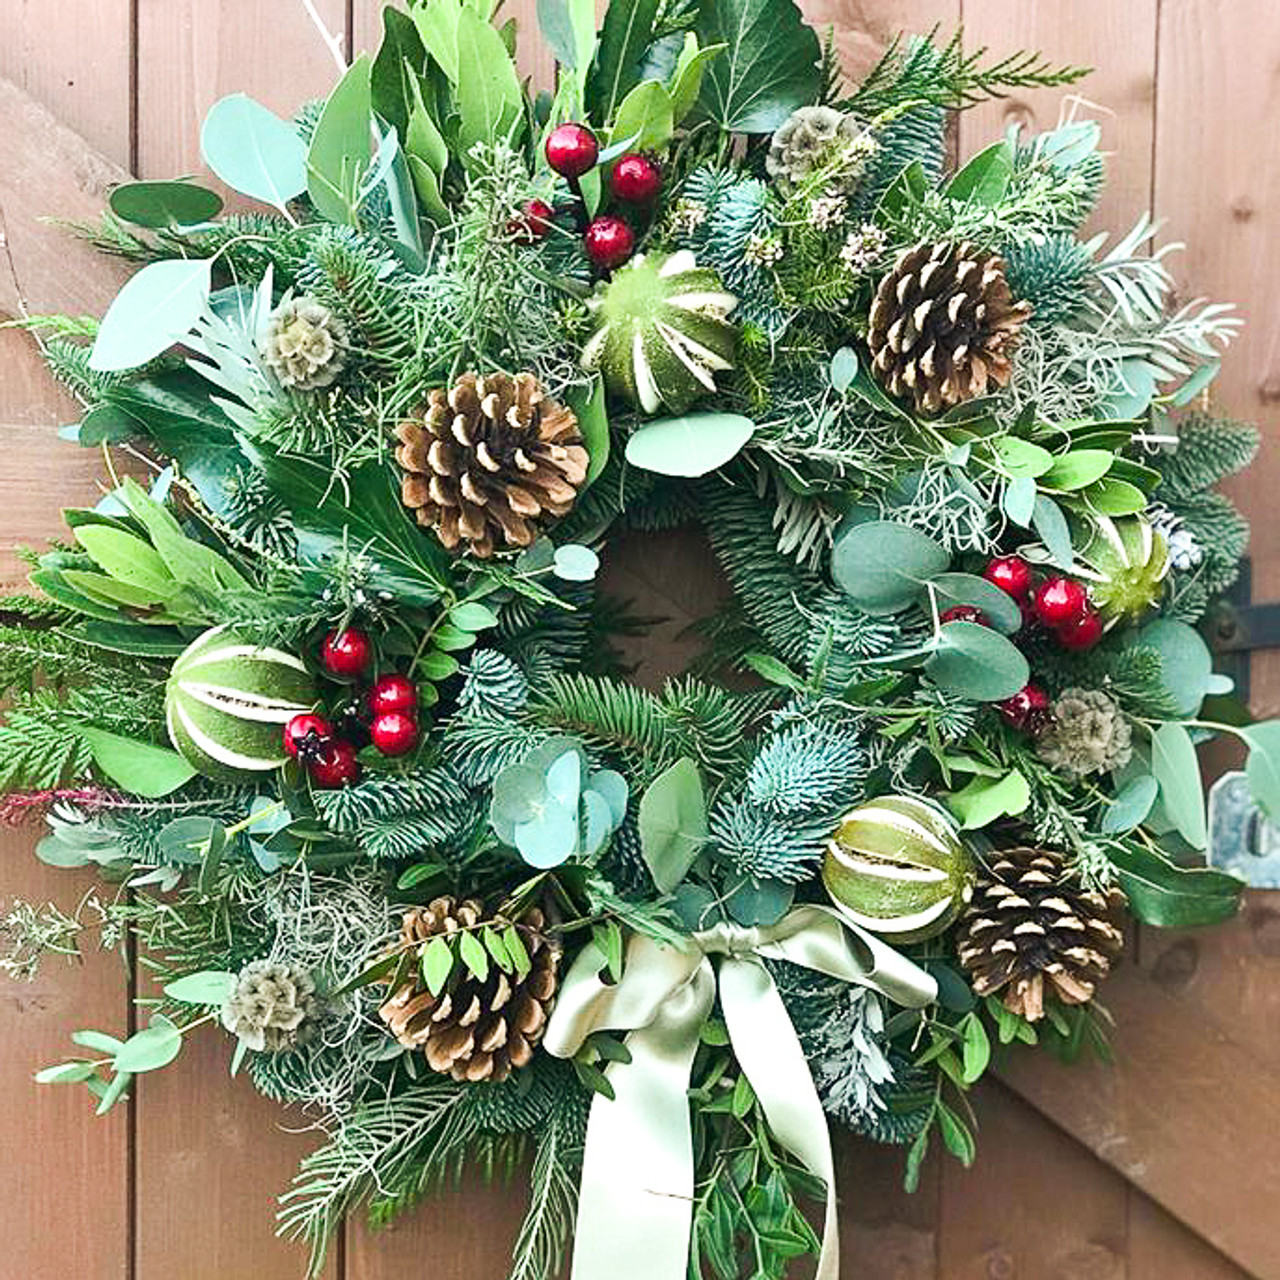 Image Christmas Wreath.Fresh Christmas Wreath With Bramble Cottage Flowers Christmas Workshop Tuesday 3rd December 2019 Evening